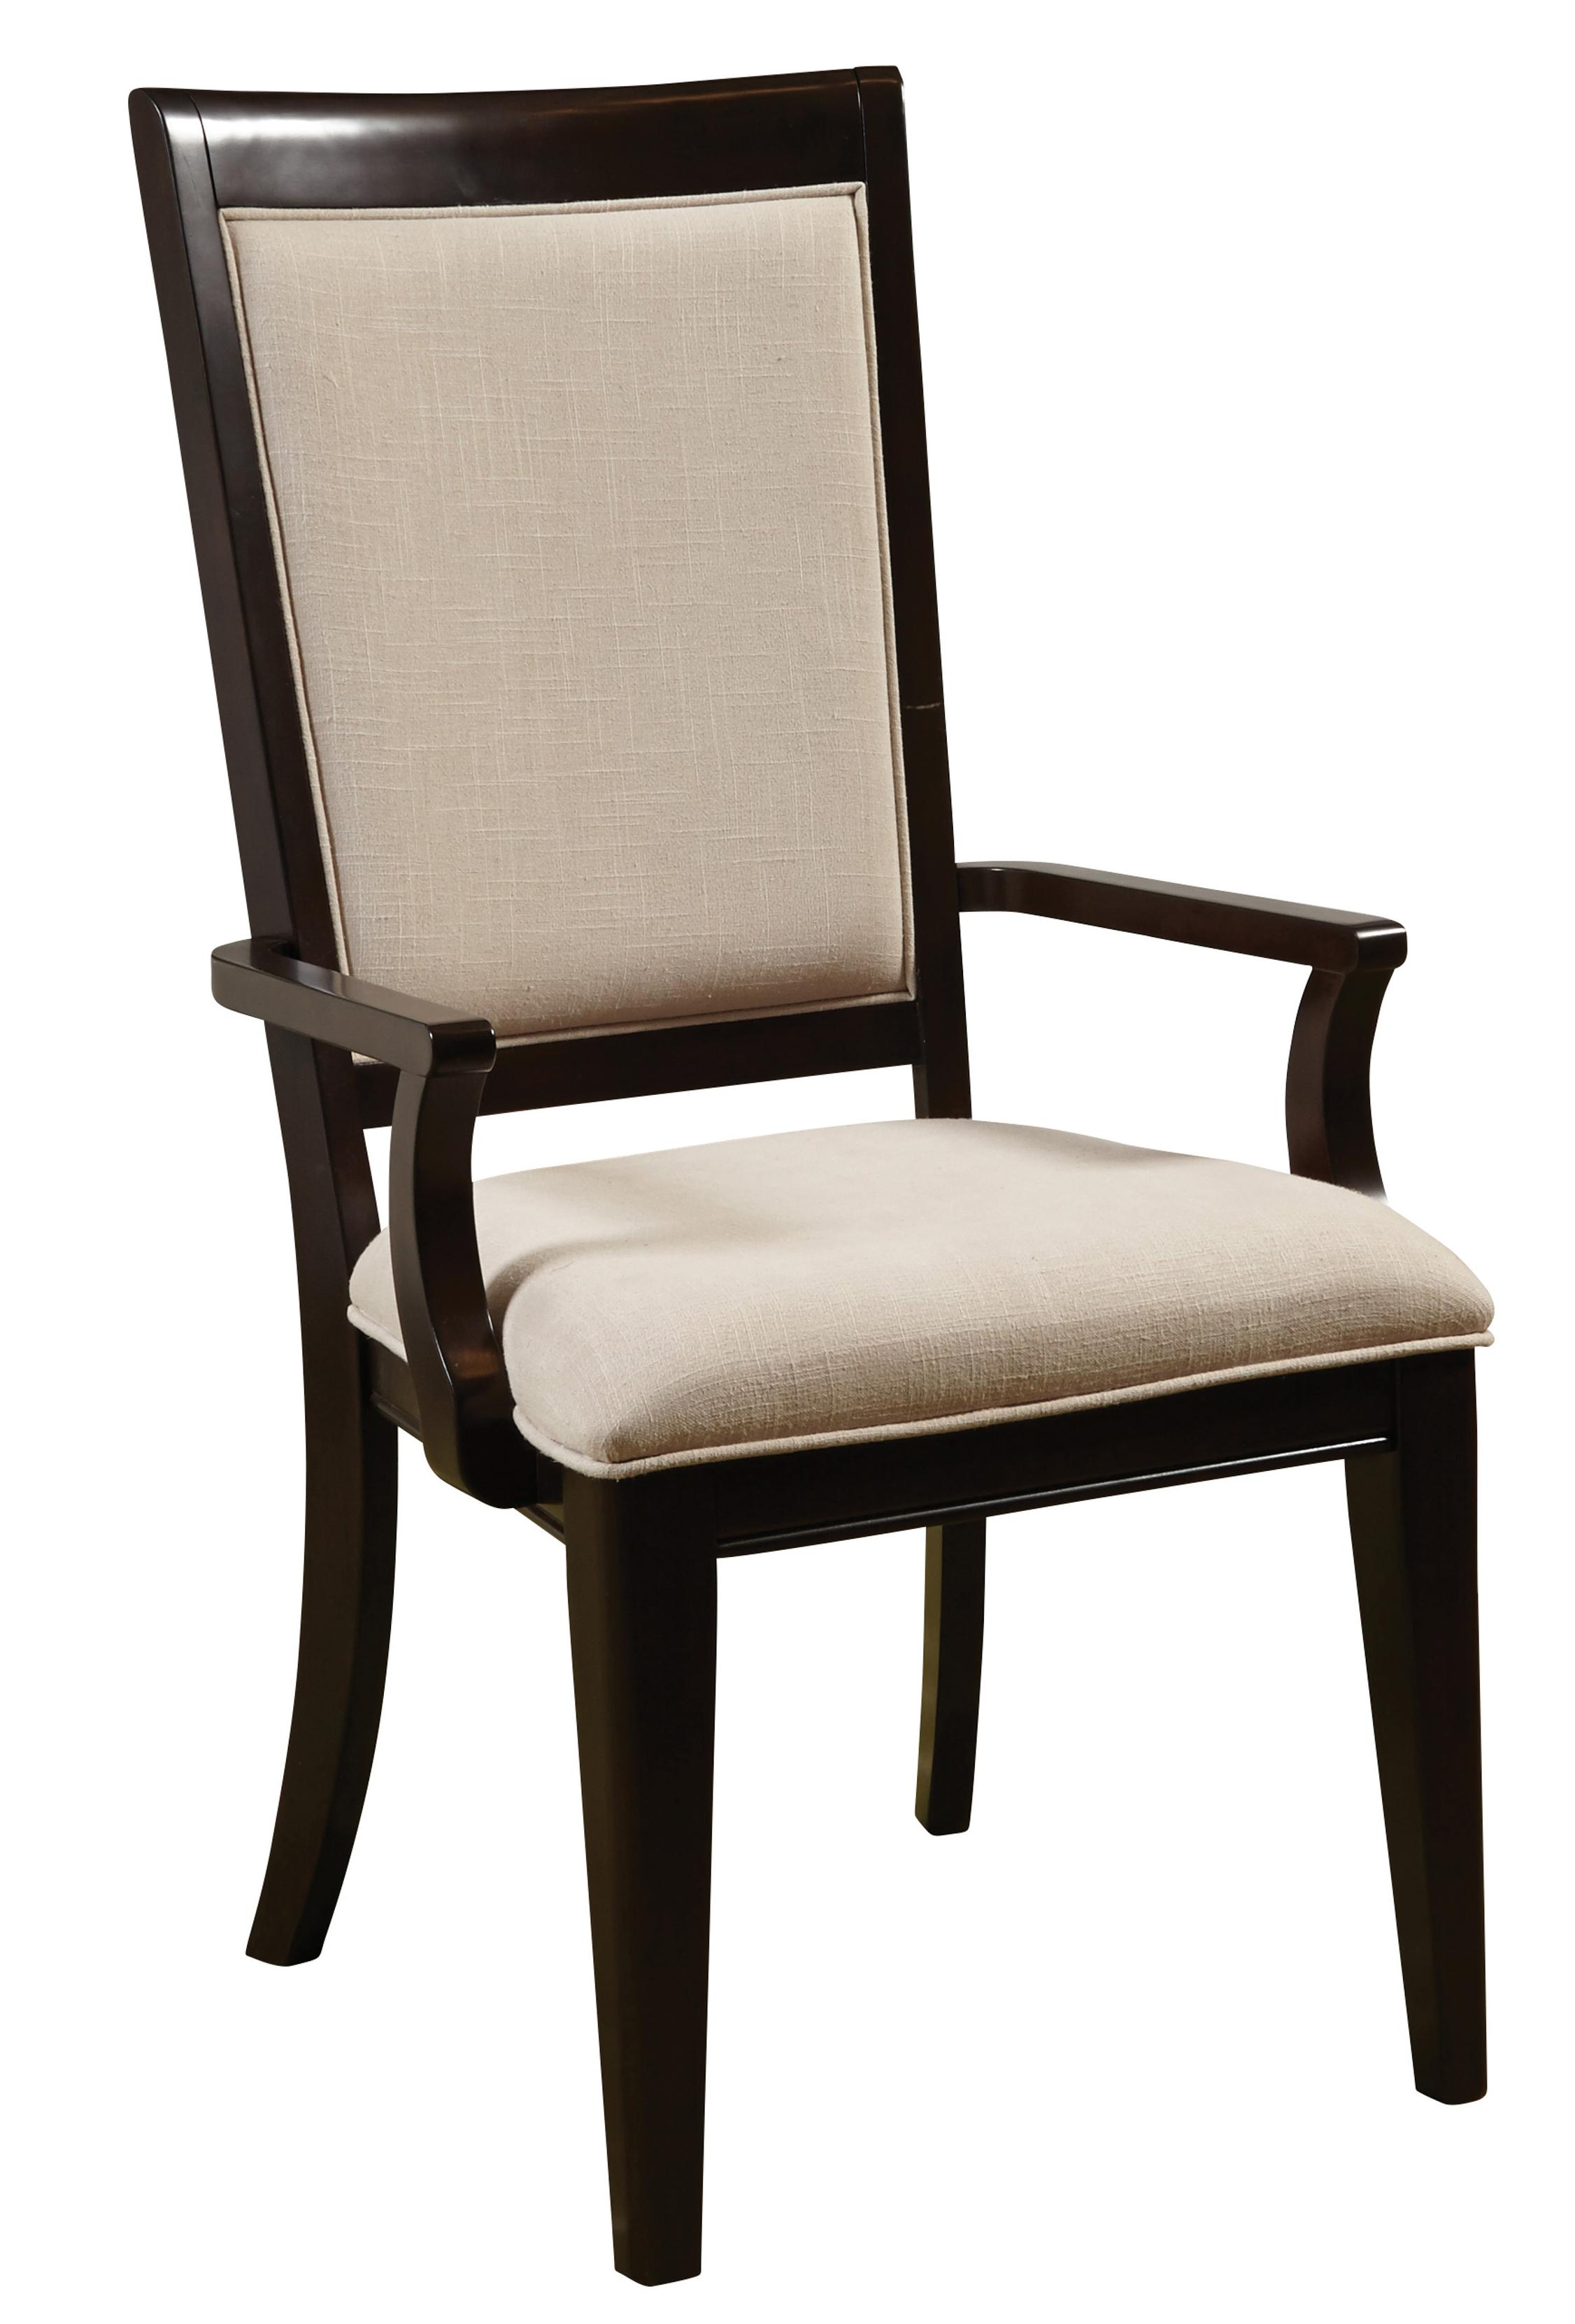 Samuel Lawrence Brighton Arm Chair - Item Number: 8672-155